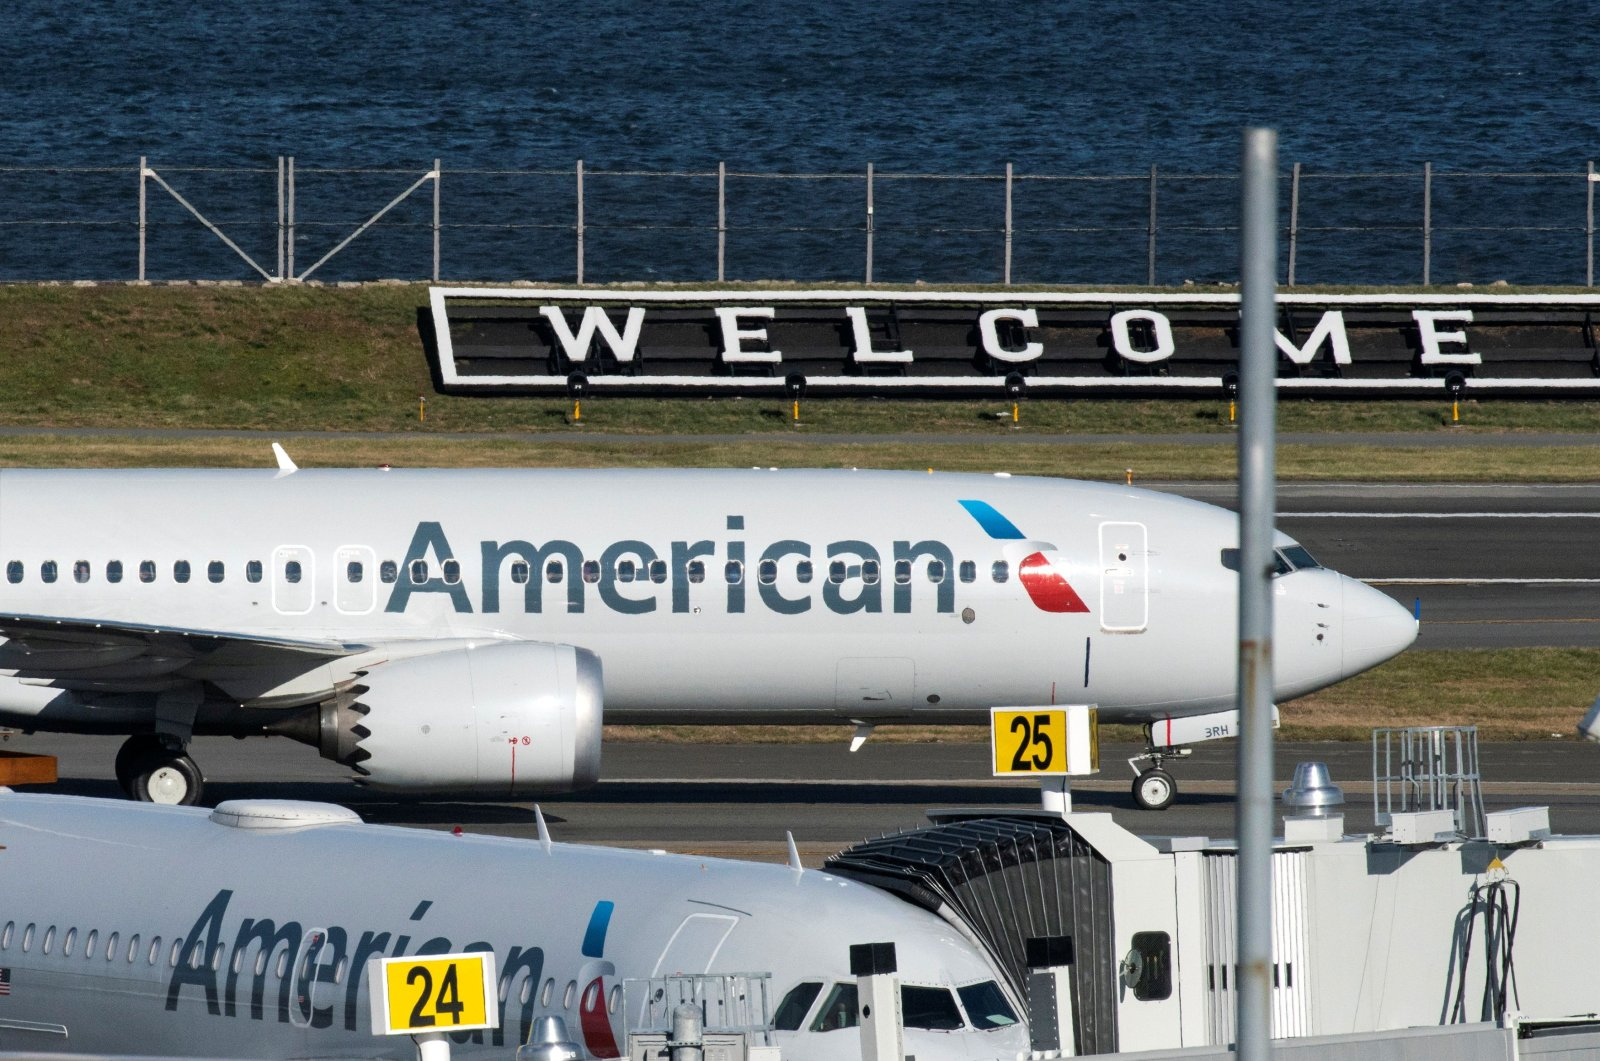 American Airlines flight 718, the first U.S. Boeing 737 MAX commercial flight since regulators lifted a 20-month grounding in November, lands at LaGuardia airport in New York, U.S. Dec. 29, 2020. (Reuters Photo)